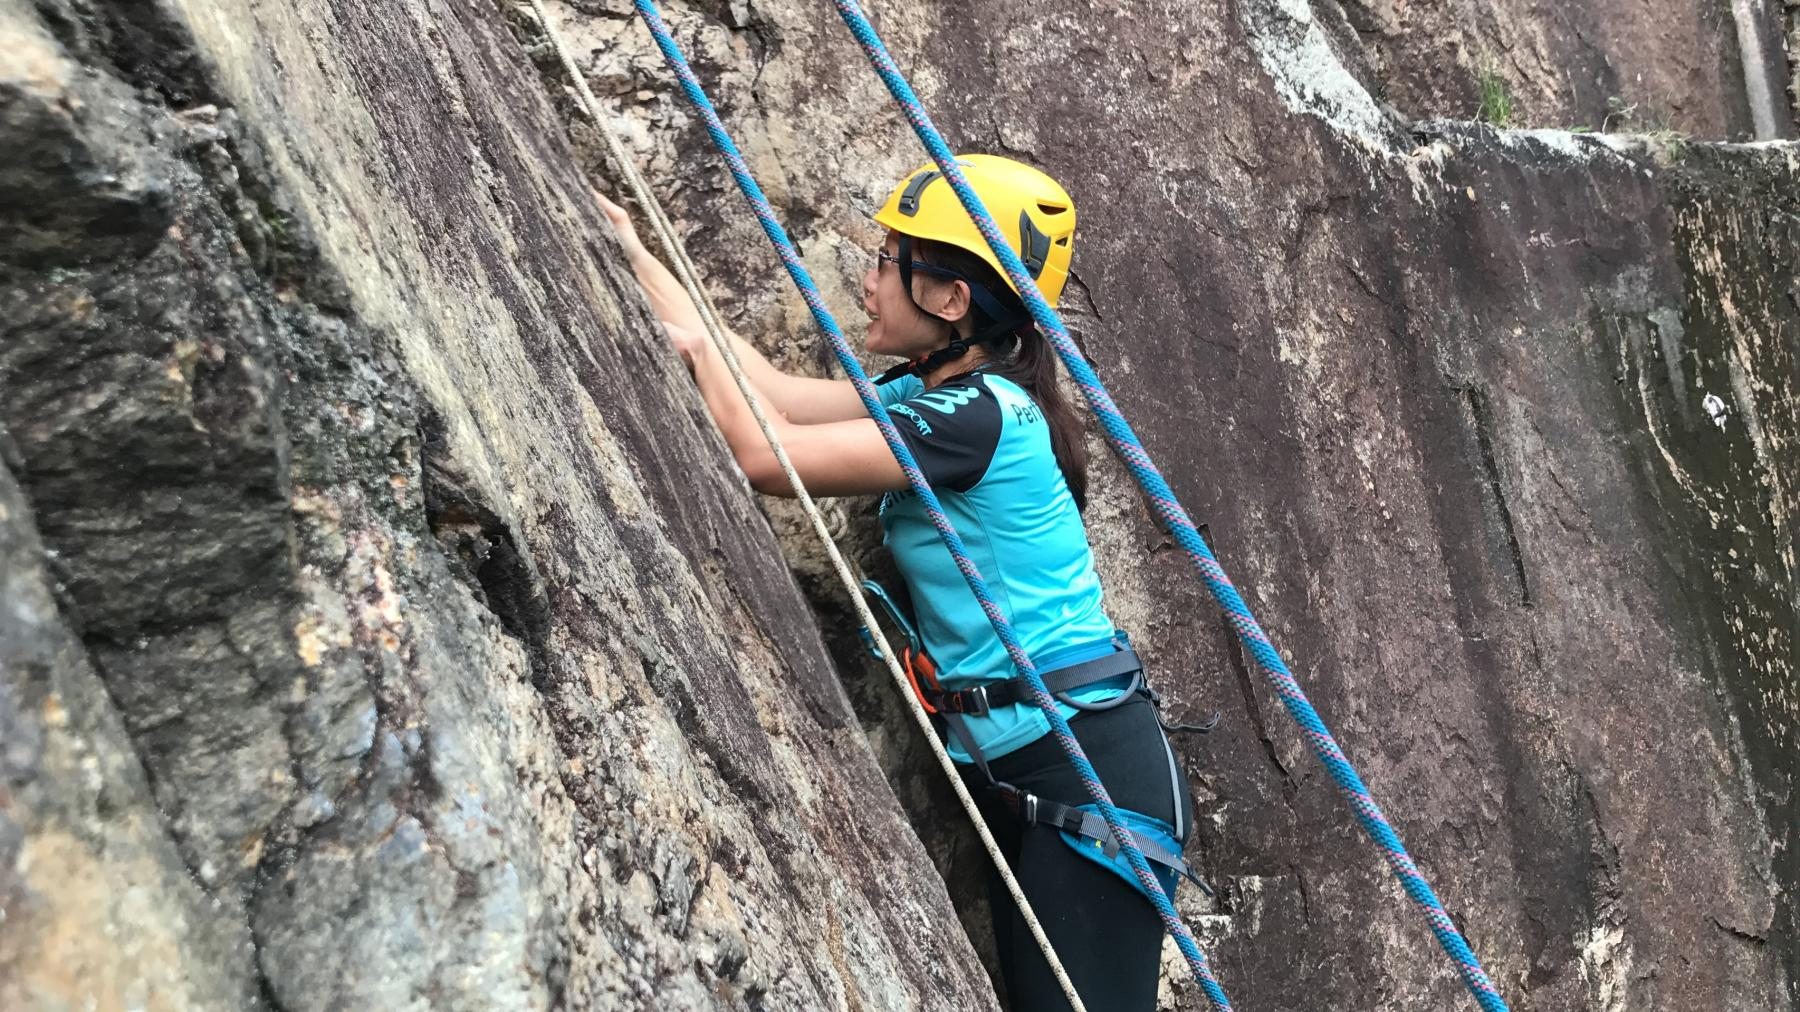 Introductory Course: Natural Wall Rock Climbing and Abseiling! starting at Dairy Farm Rock Climbing Wall Singapore